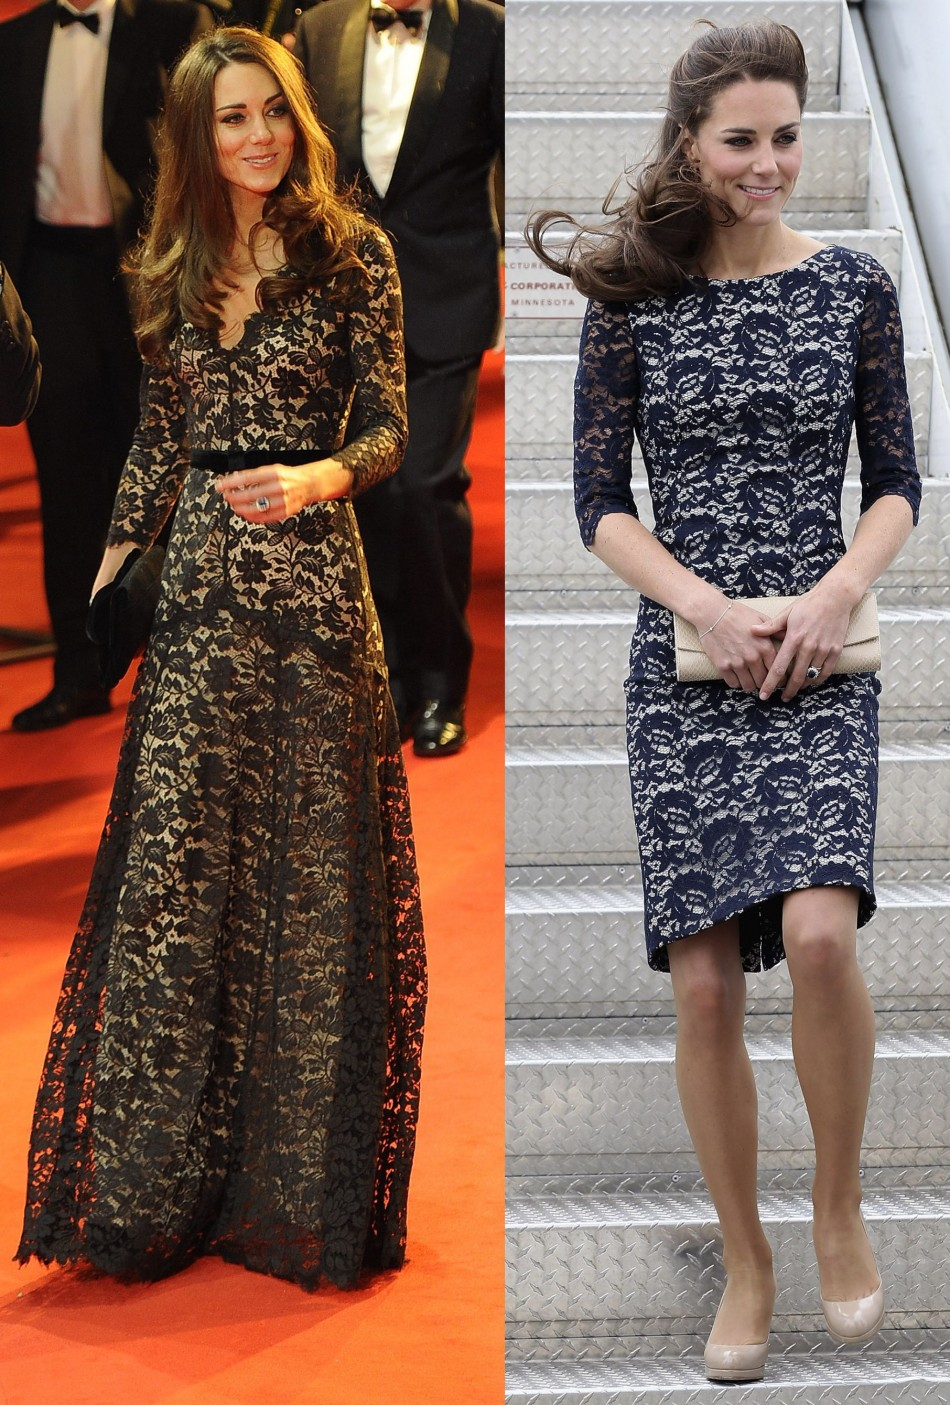 Is Kate Middleton showing a baby bump?